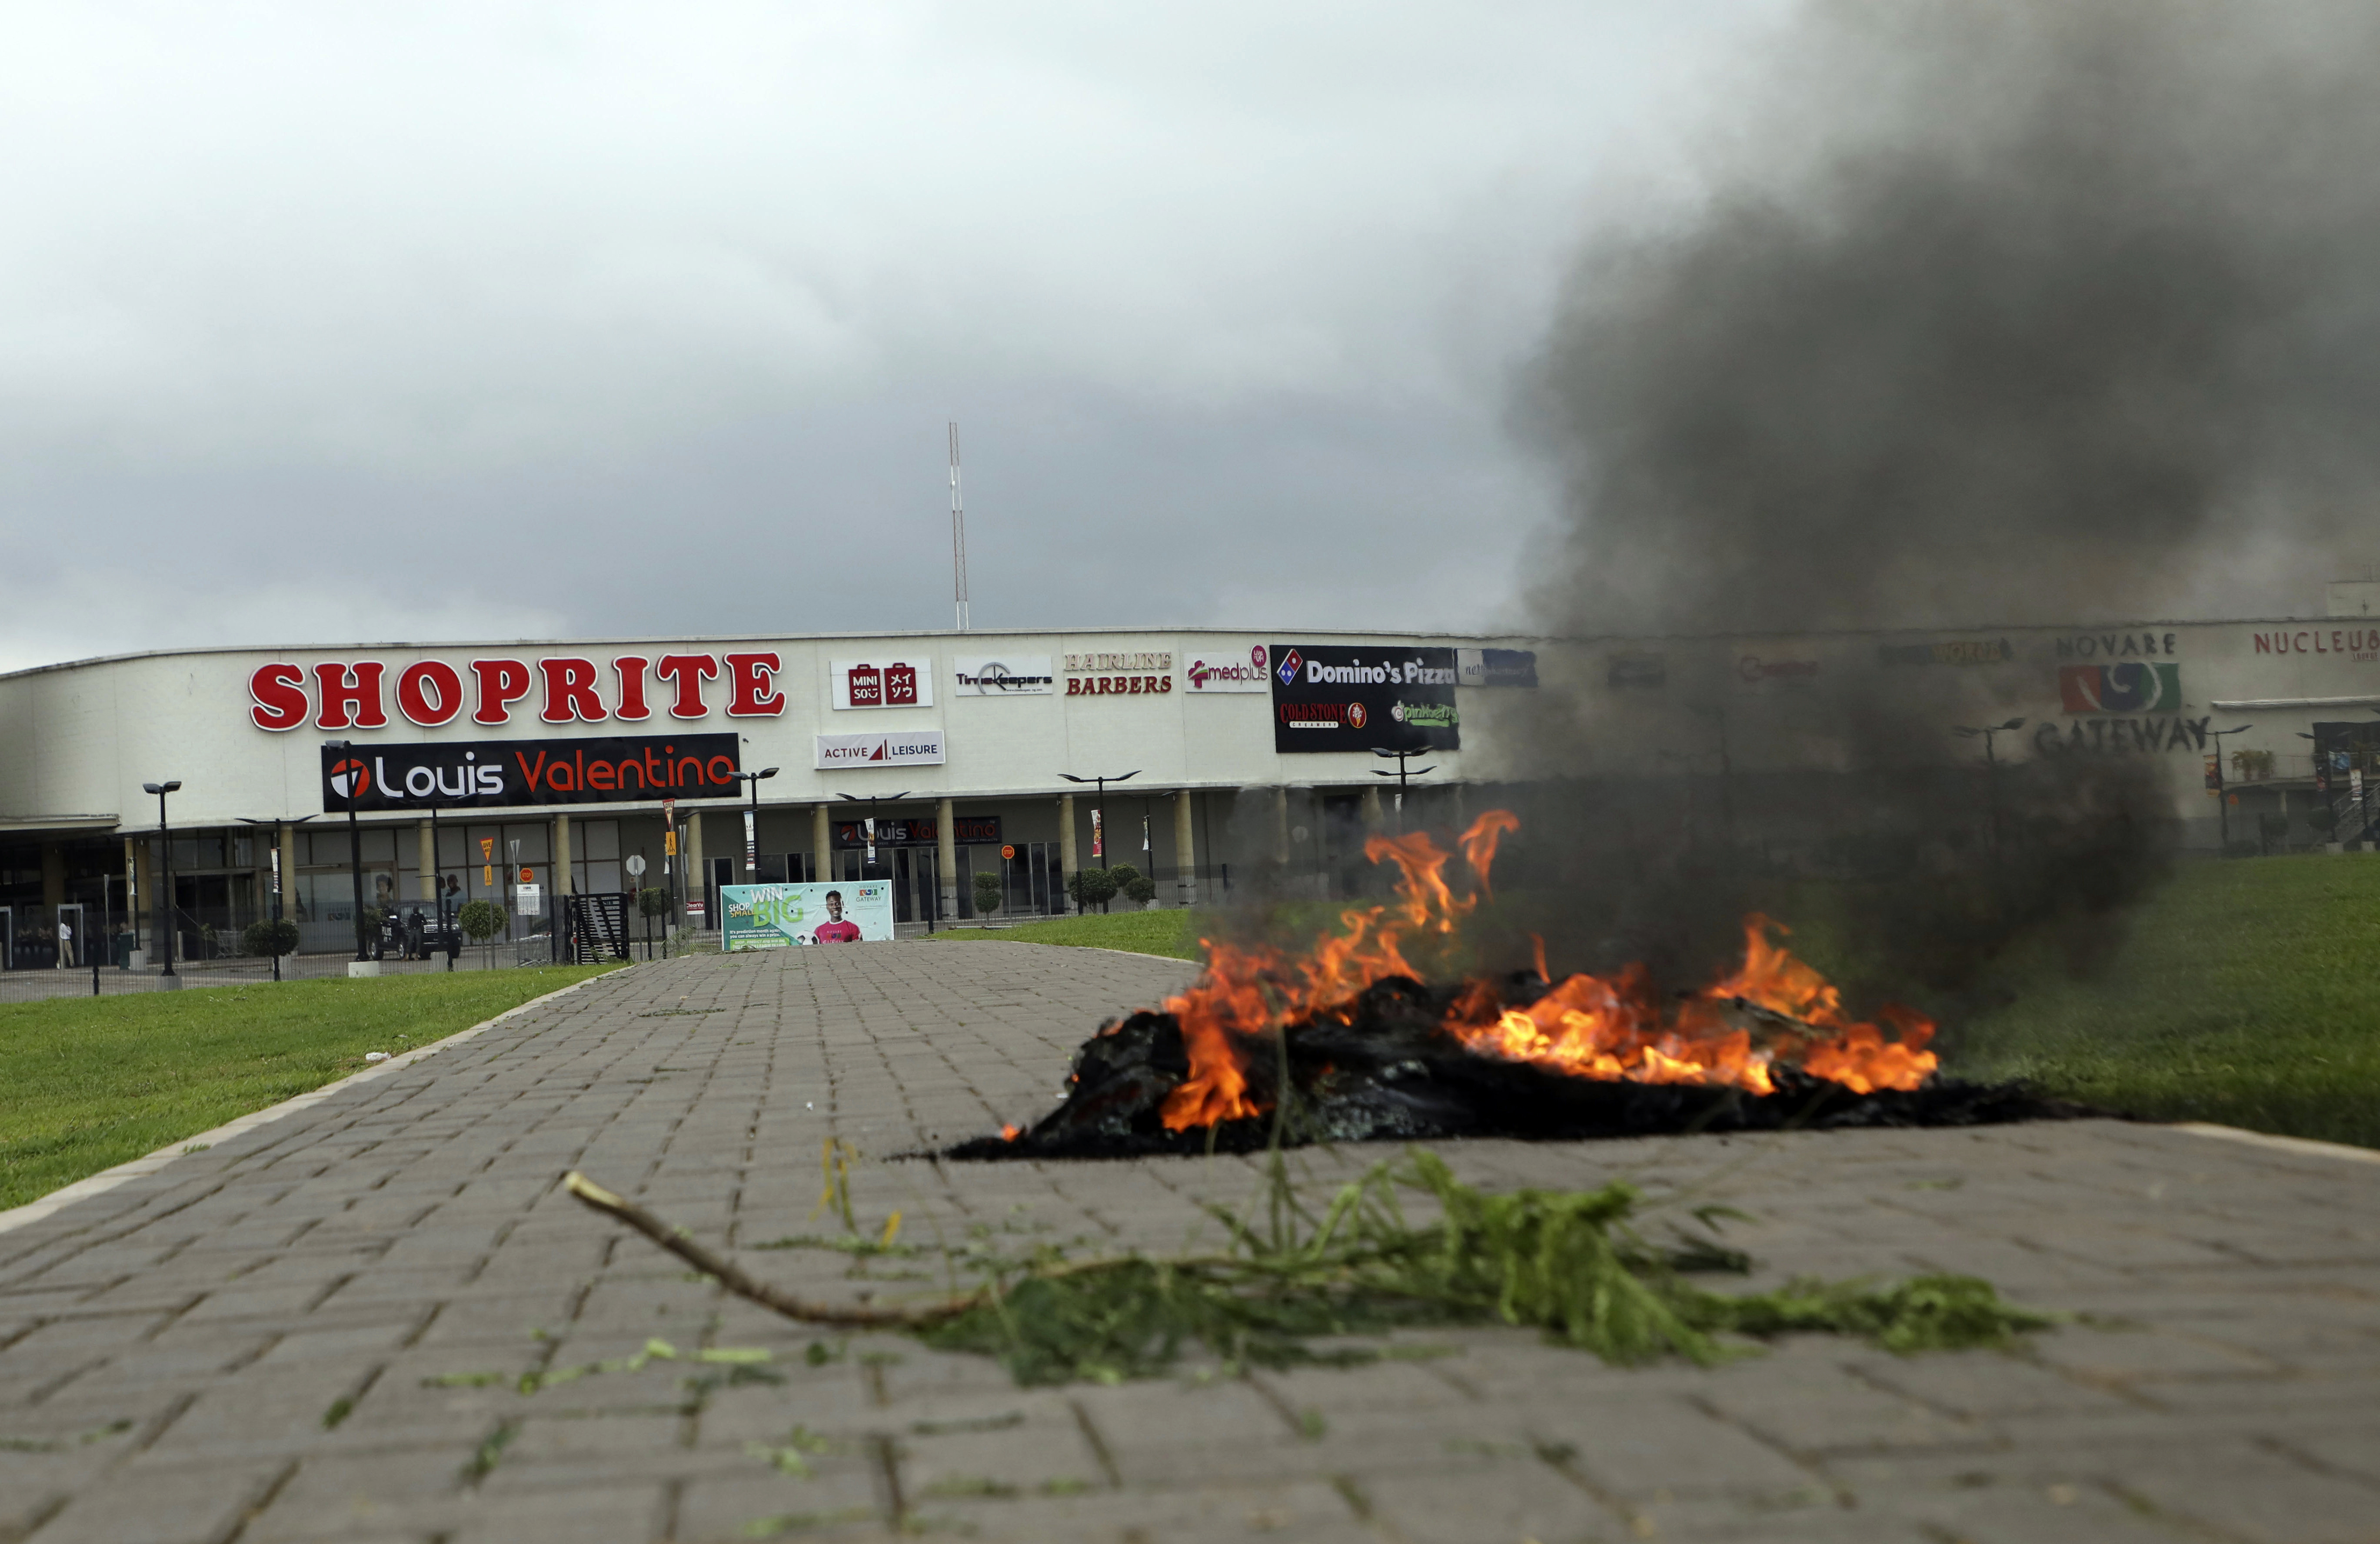 Nigerians Attack South African Businesses in Retaliation - VOA News